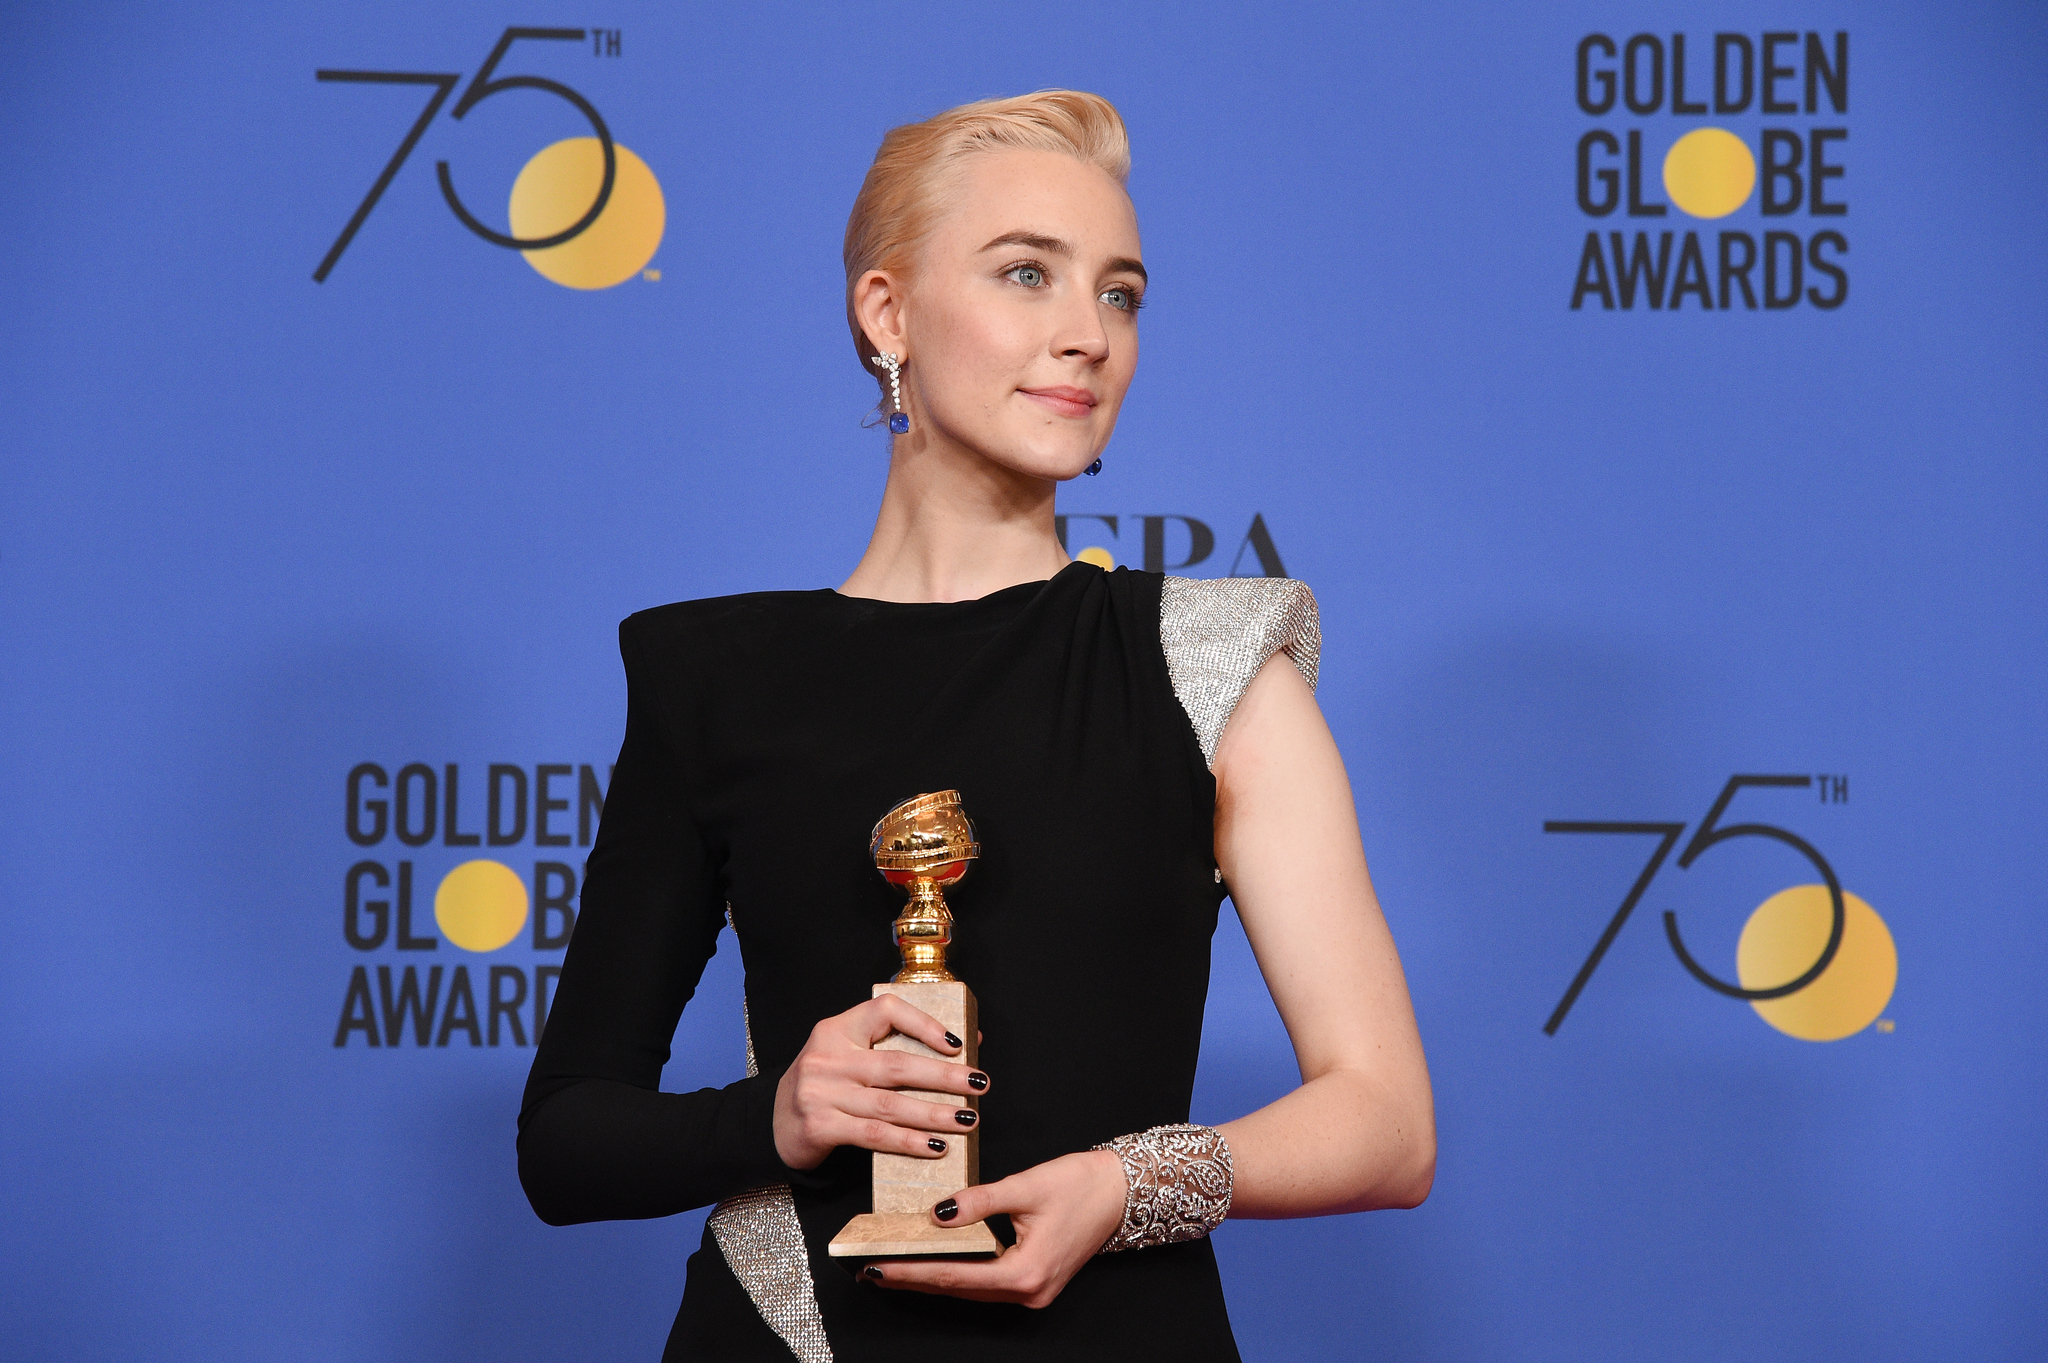 Saoirse Ronan at an event for The 75th Annual Golden Globe Awards 2018 (2018)